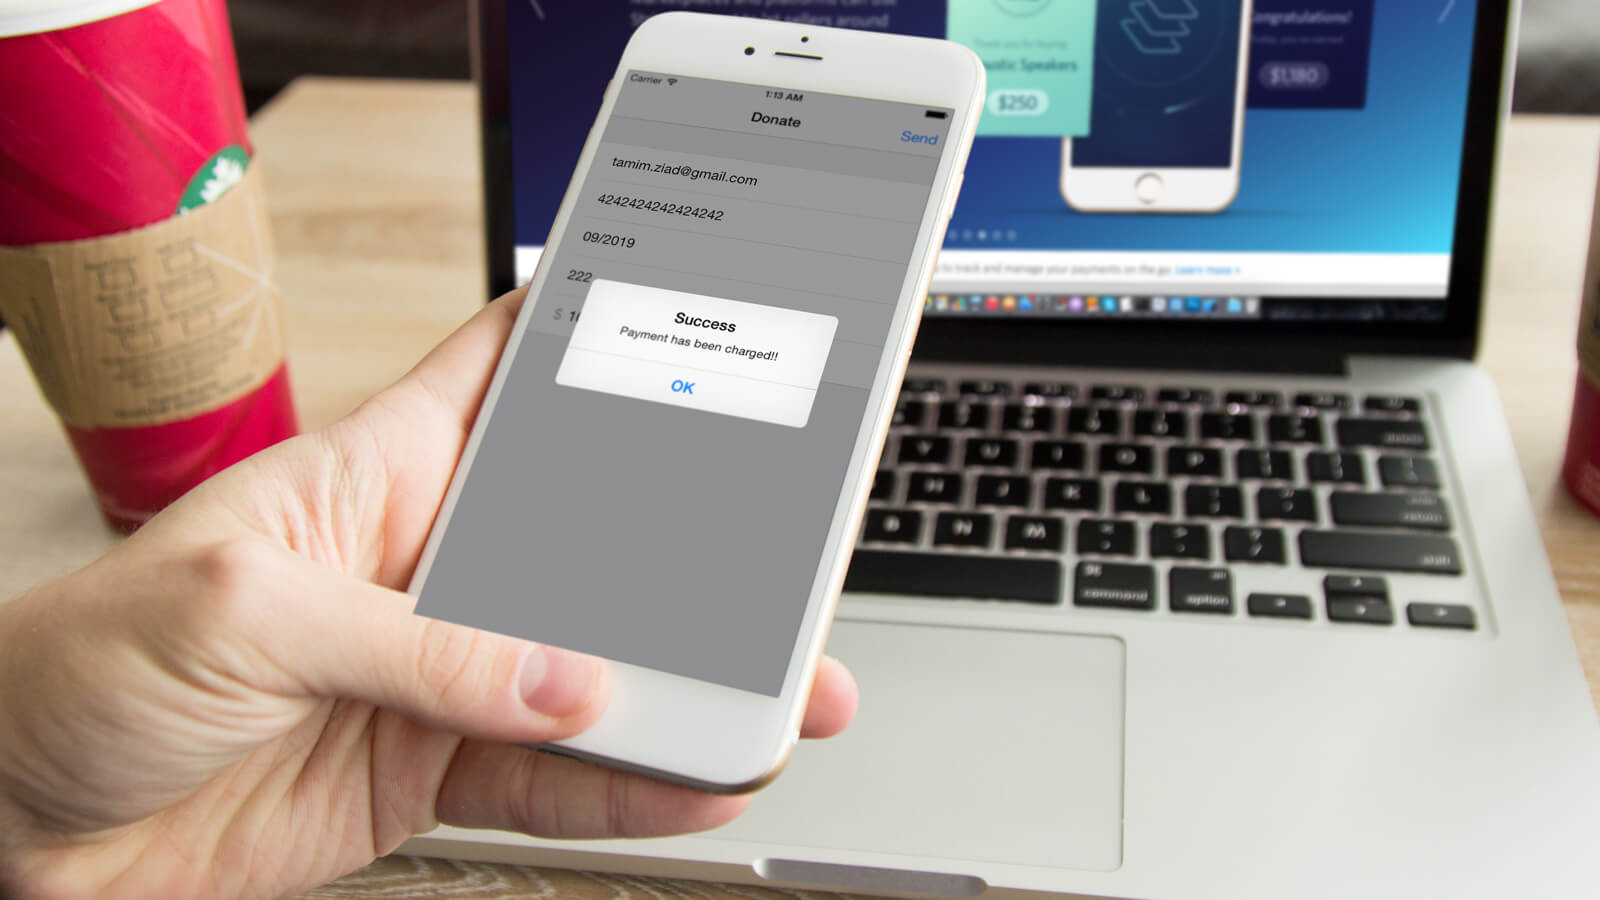 A Swift Tutorial for Stripe: Taking Credit Card Payments in iOS Apps